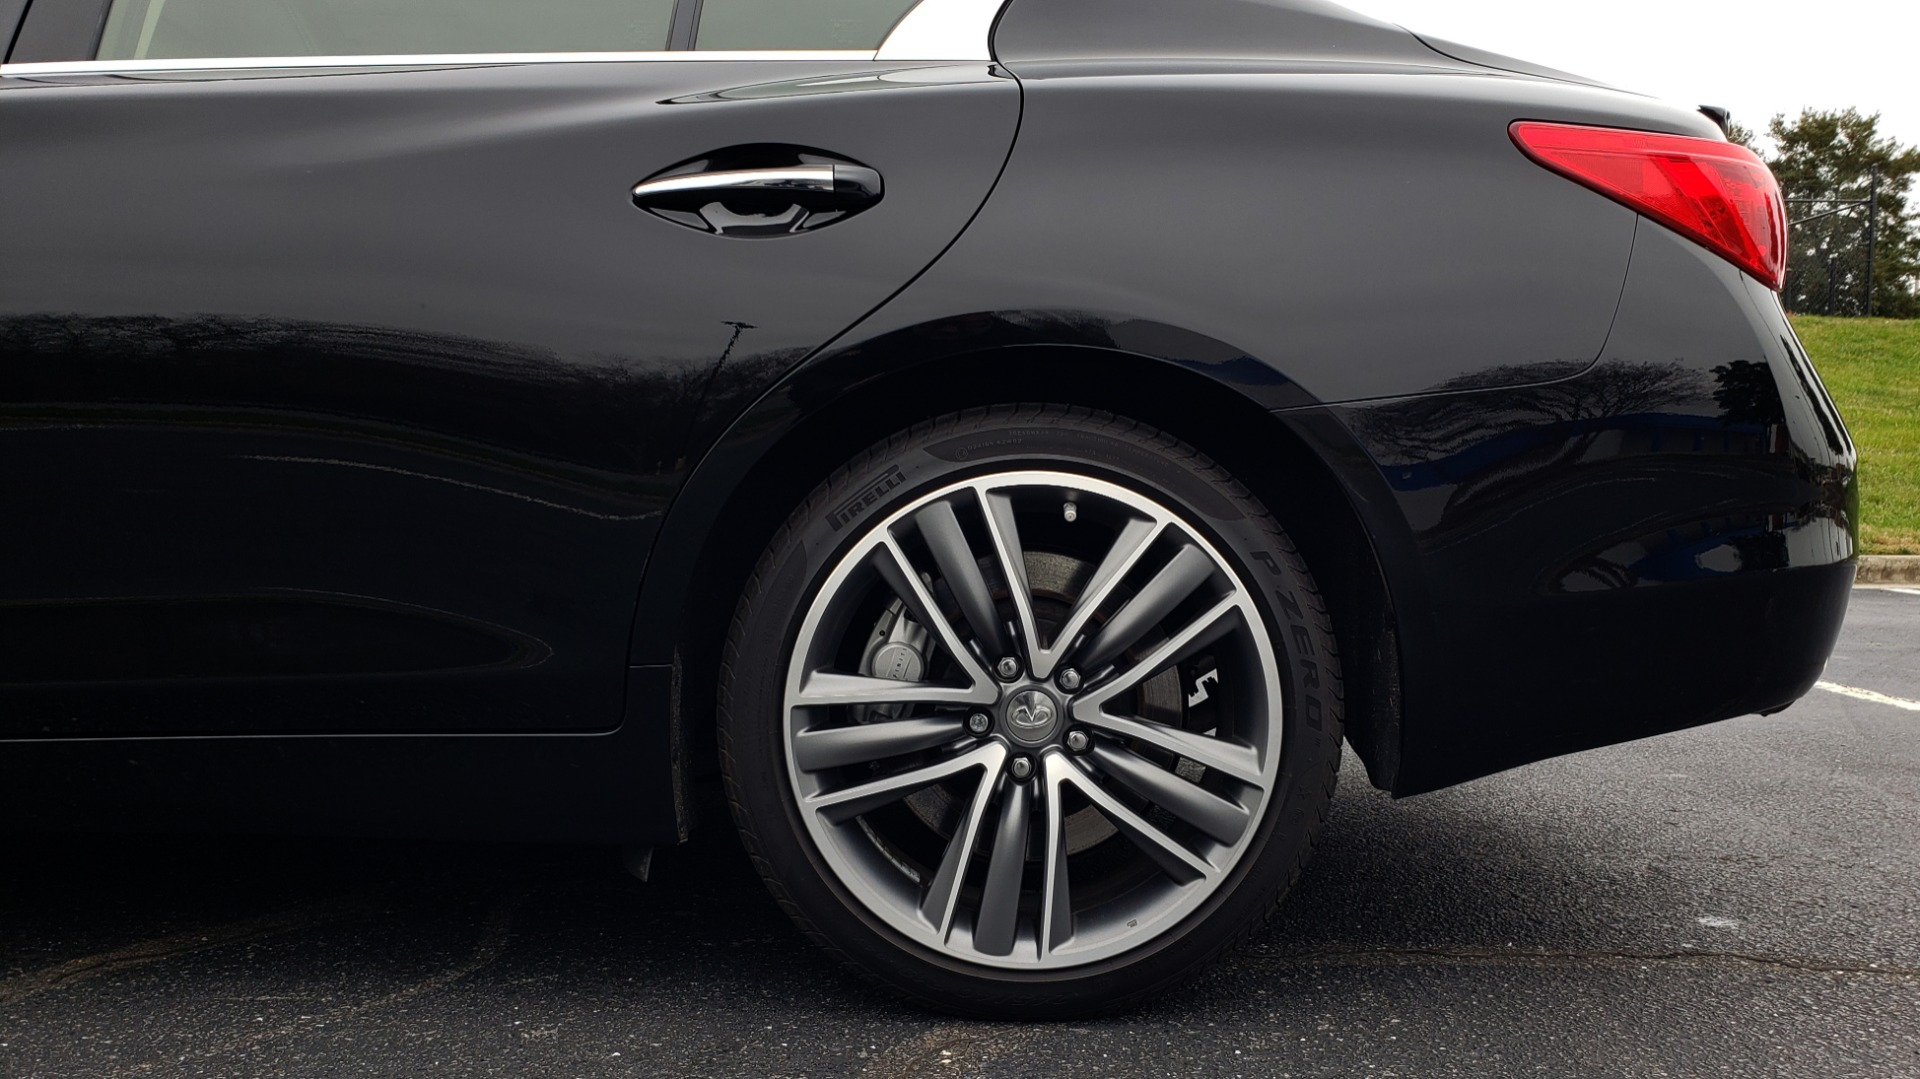 Used 2016 INFINITI Q50 3.0t PREMIUM SPORT AWD / NAV / SUNROOF / HTD STS / REARVIEW for sale Sold at Formula Imports in Charlotte NC 28227 80